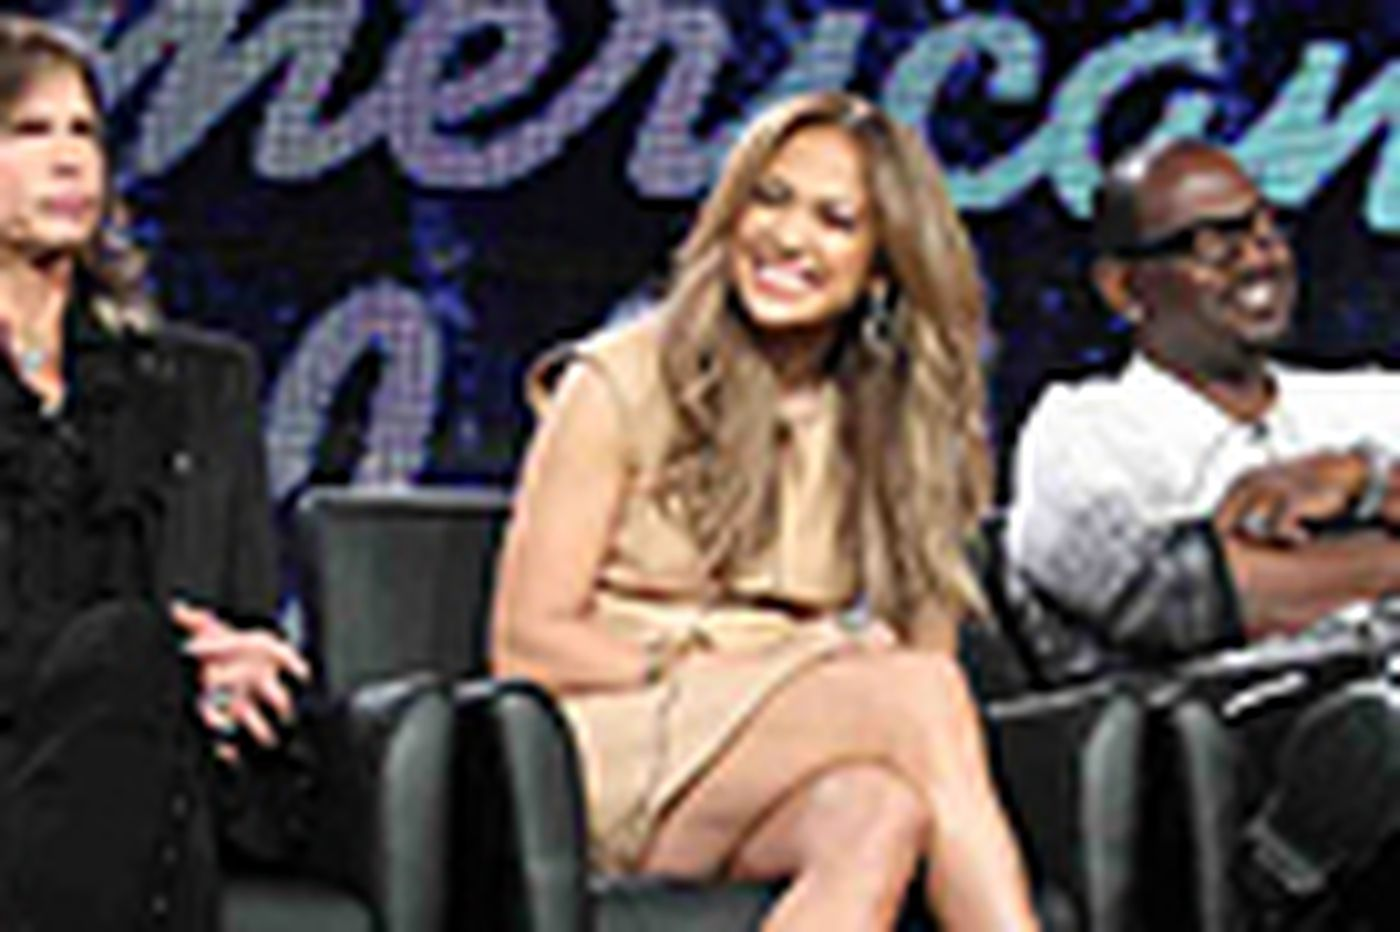 'American Idol' without Simon Cowell? Leaning toward loopy